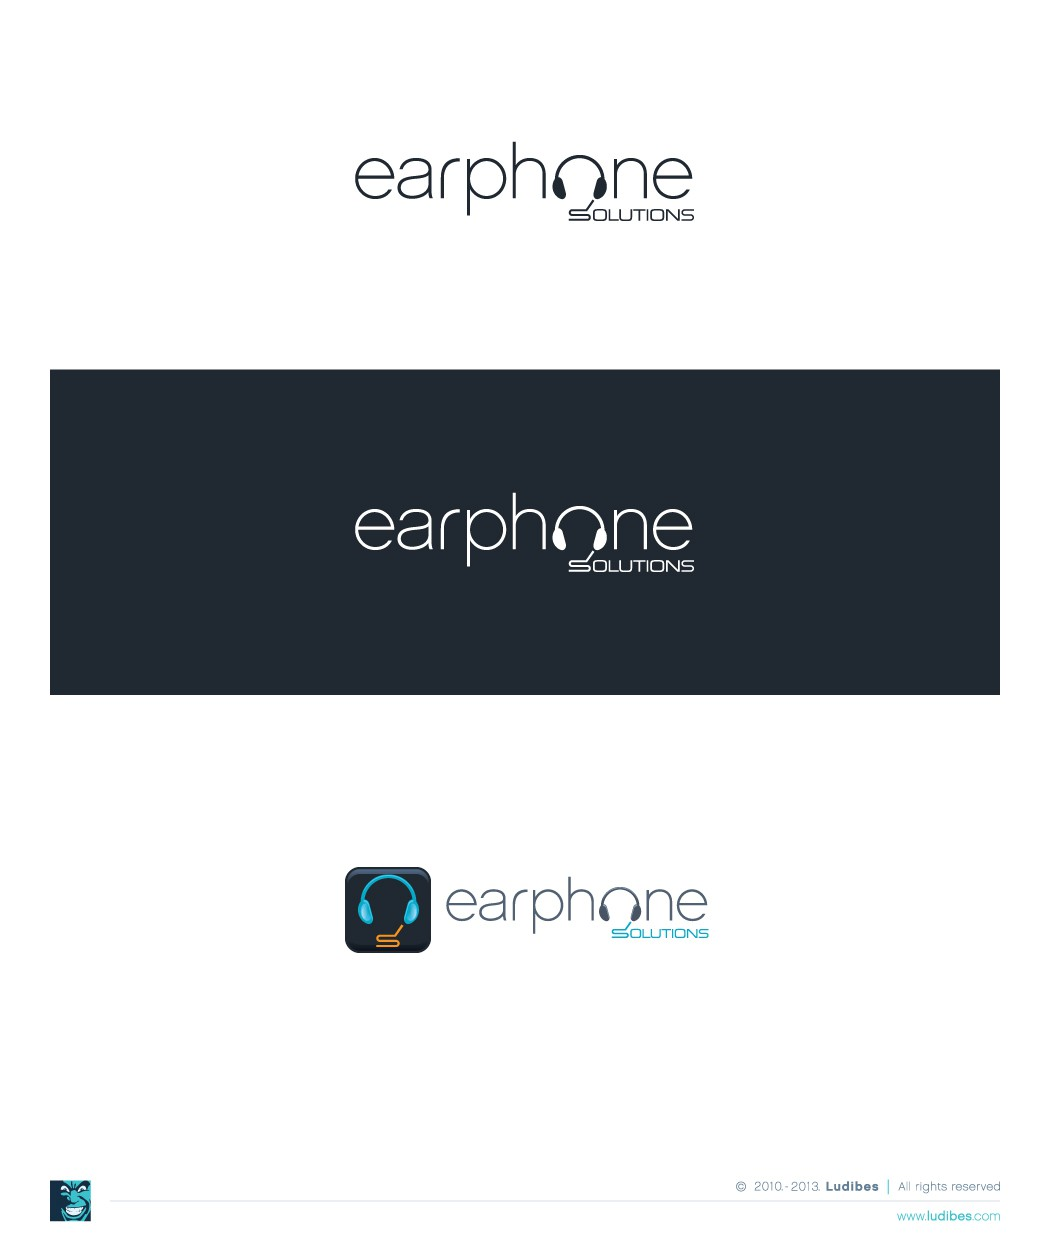 Earphone Solutions needs a new logo